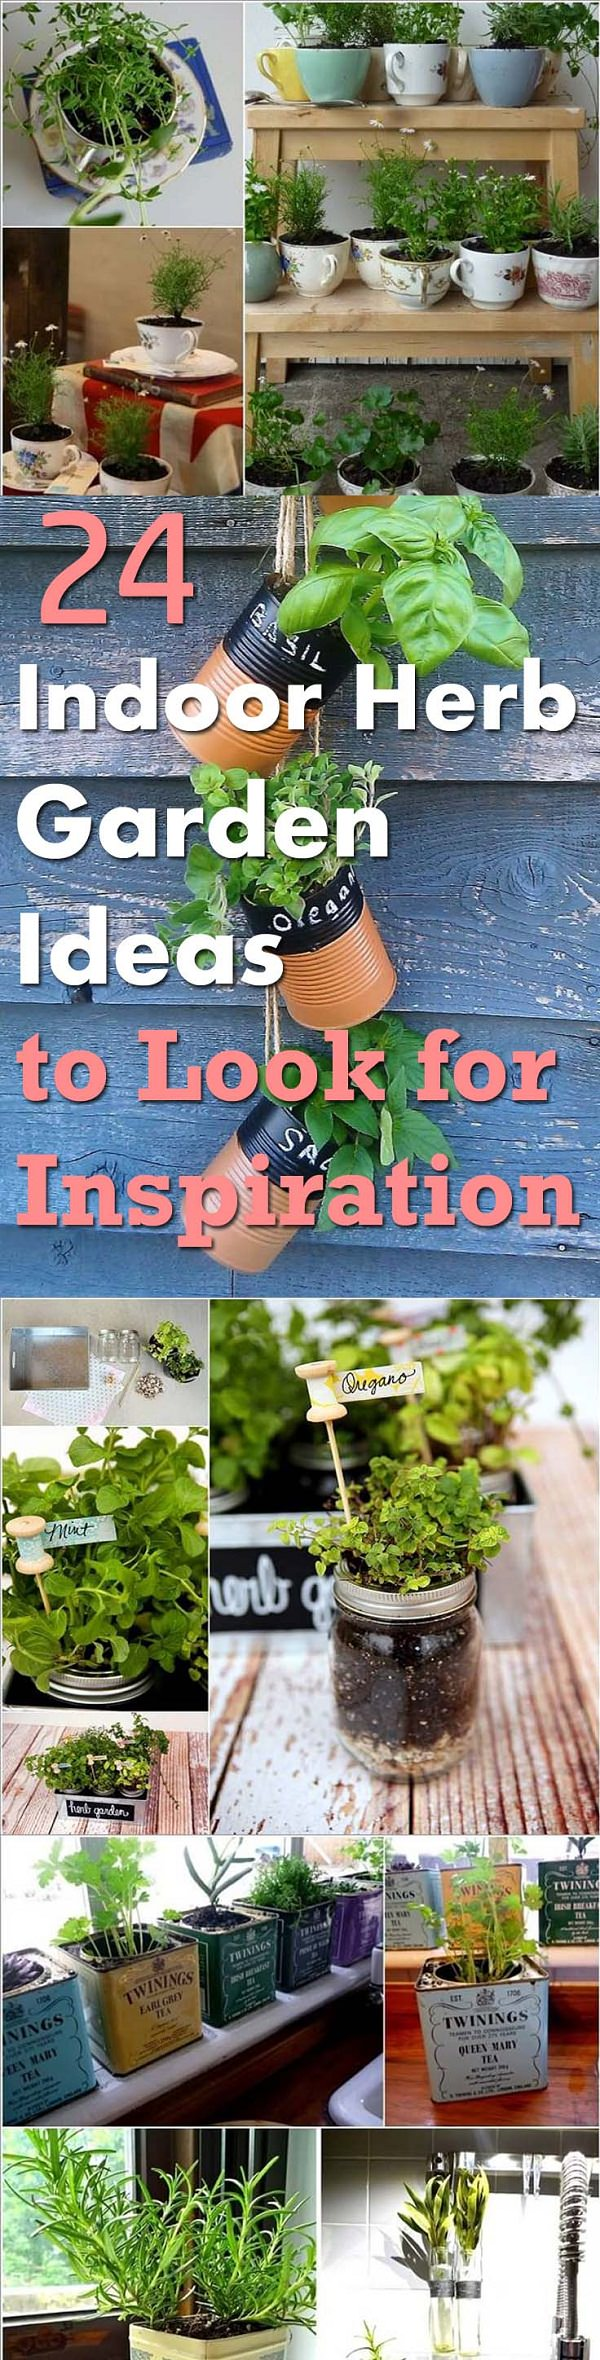 pin it indoor herb garden ideas - Indoor Herb Garden Ideas